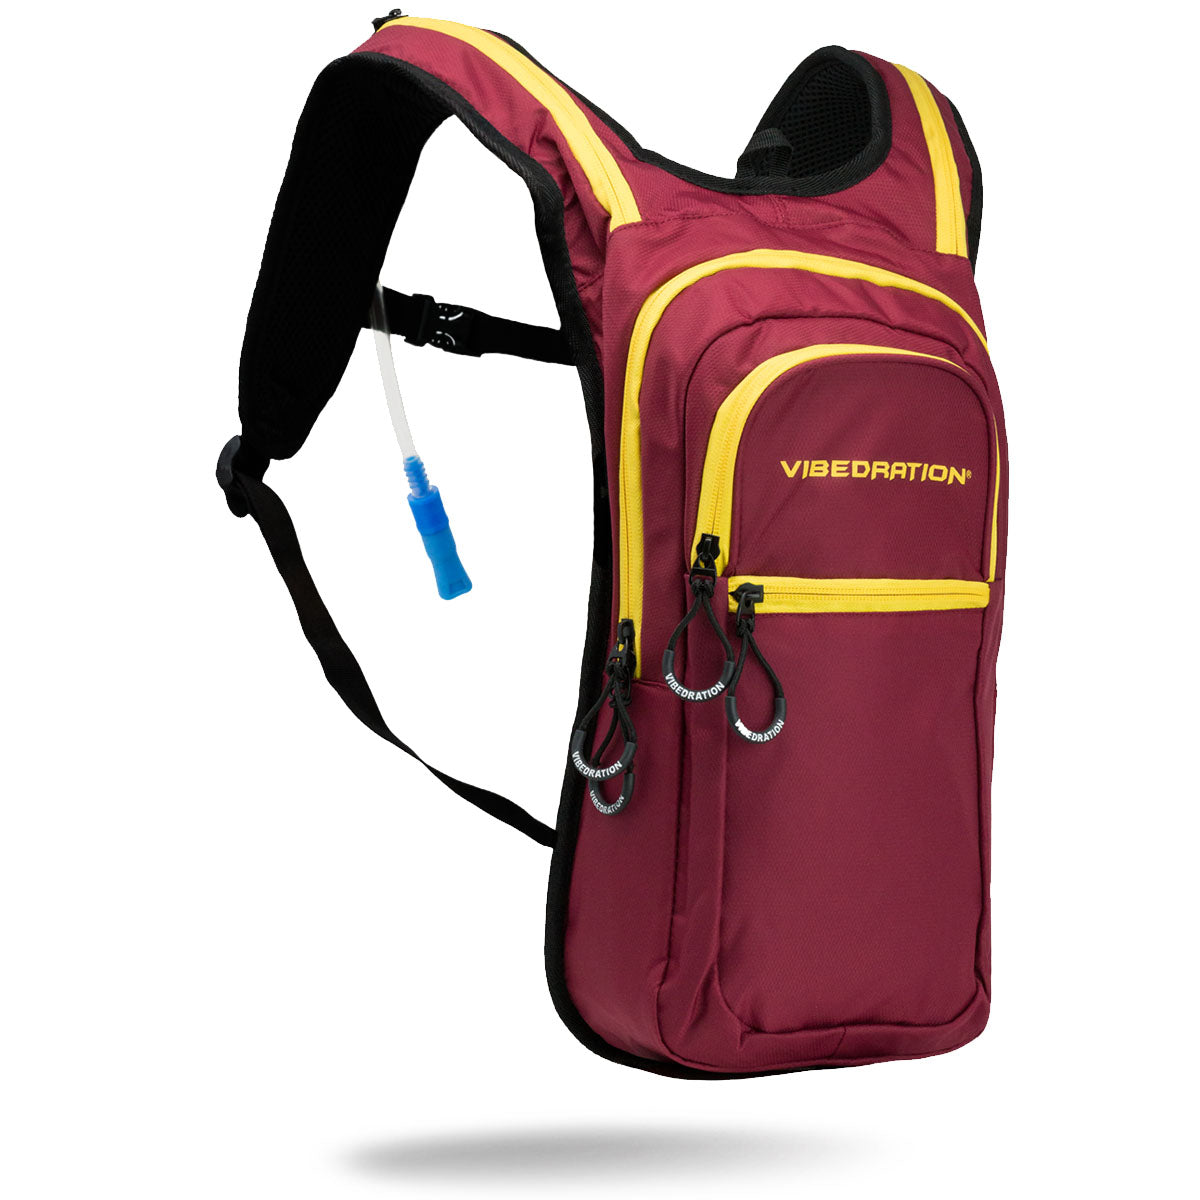 Maroon water backpack with gold zippers